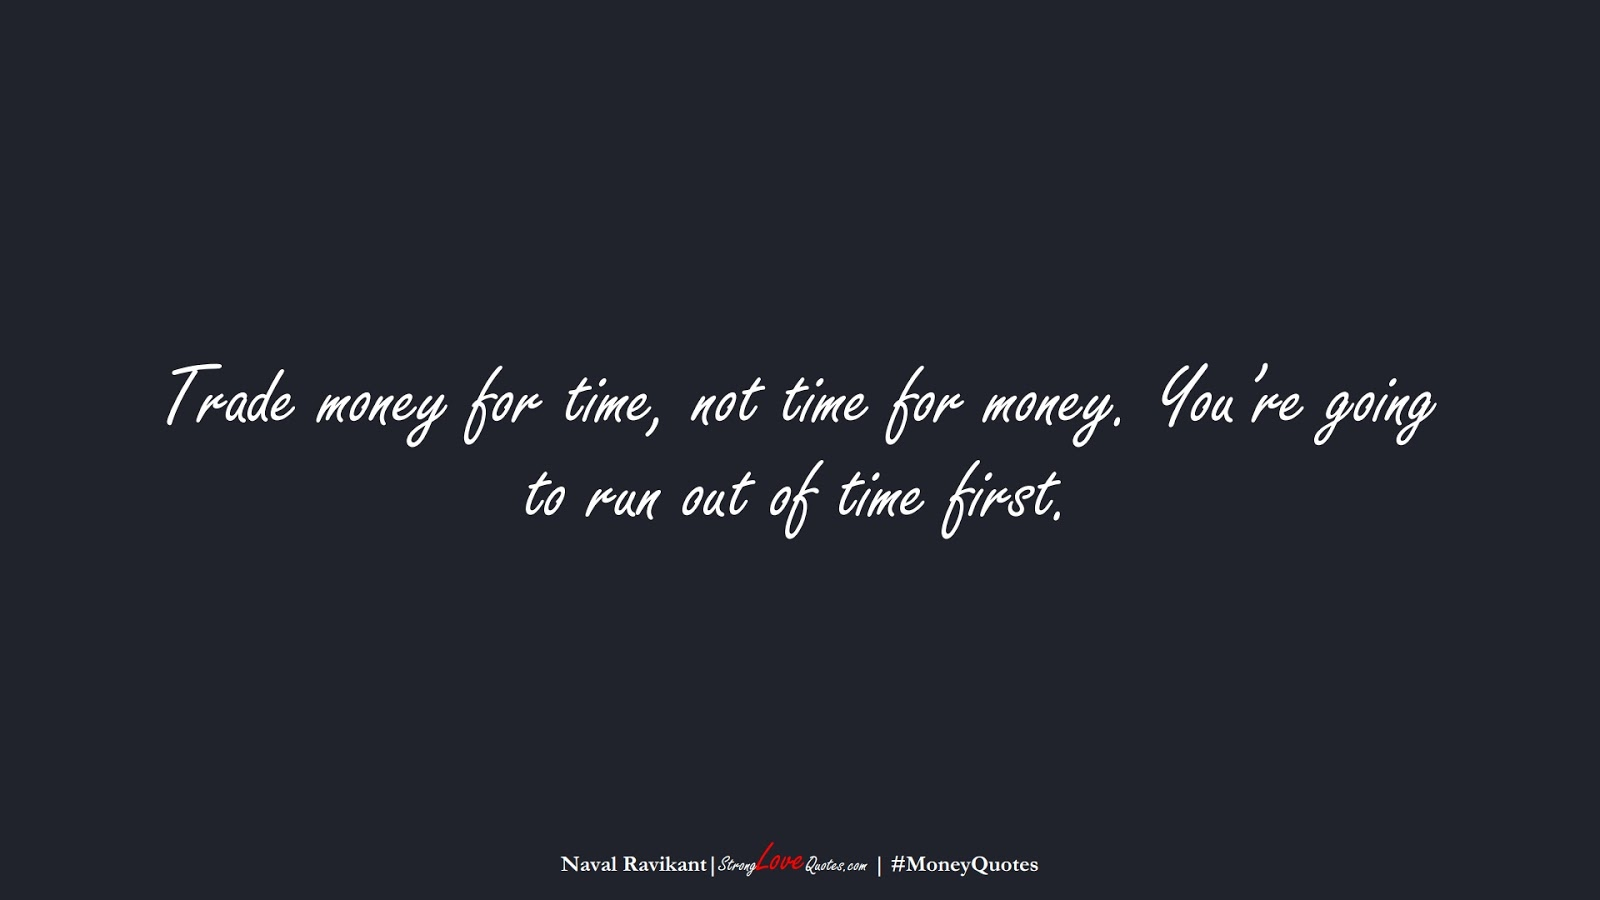 Trade money for time, not time for money. You're going to run out of time first. (Naval Ravikant);  #MoneyQuotes